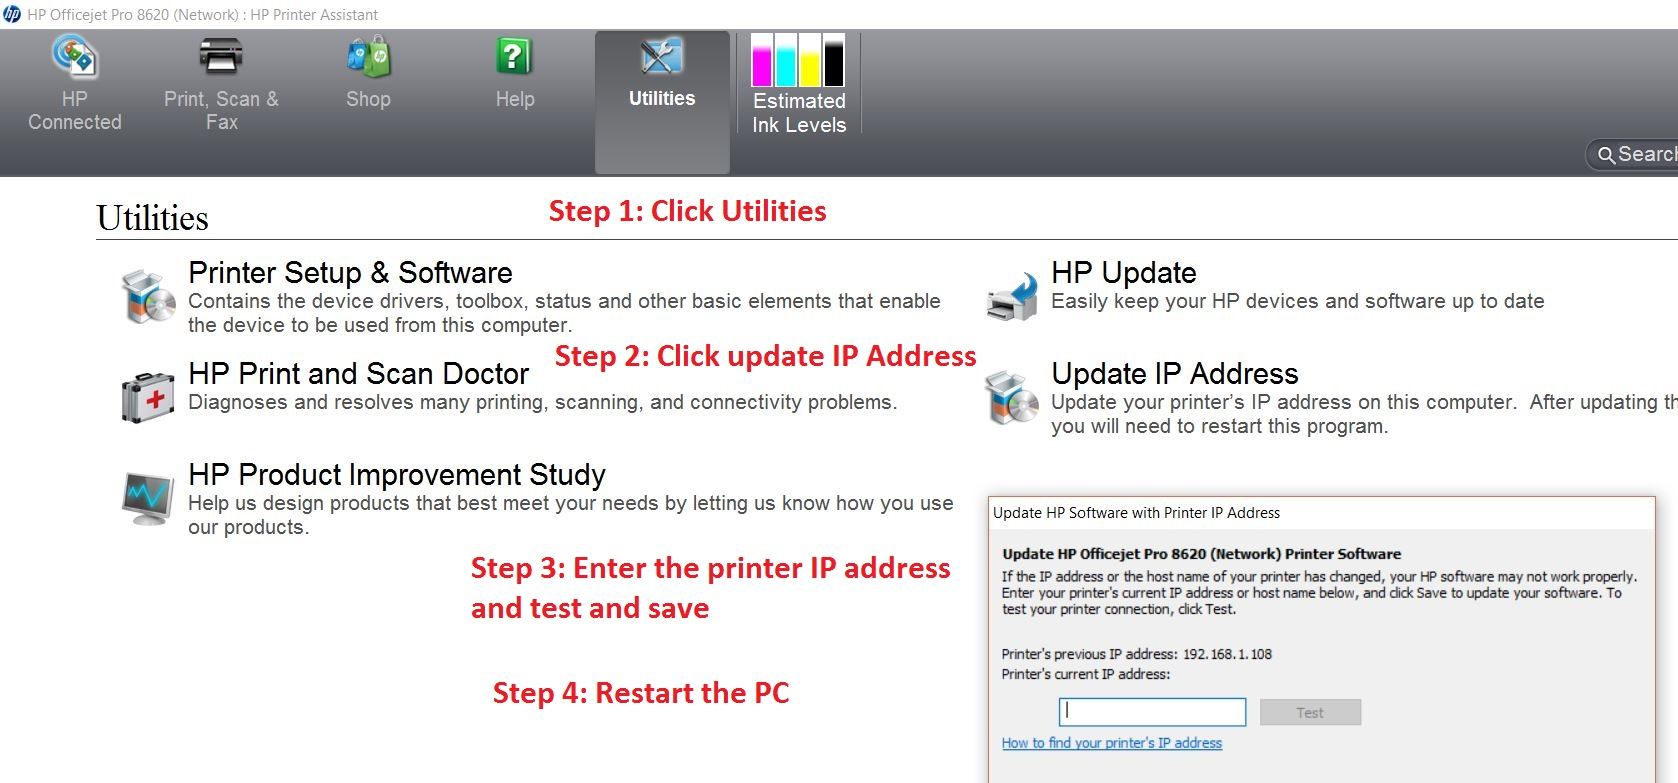 The HP OfficeJet 4650 Series was not found